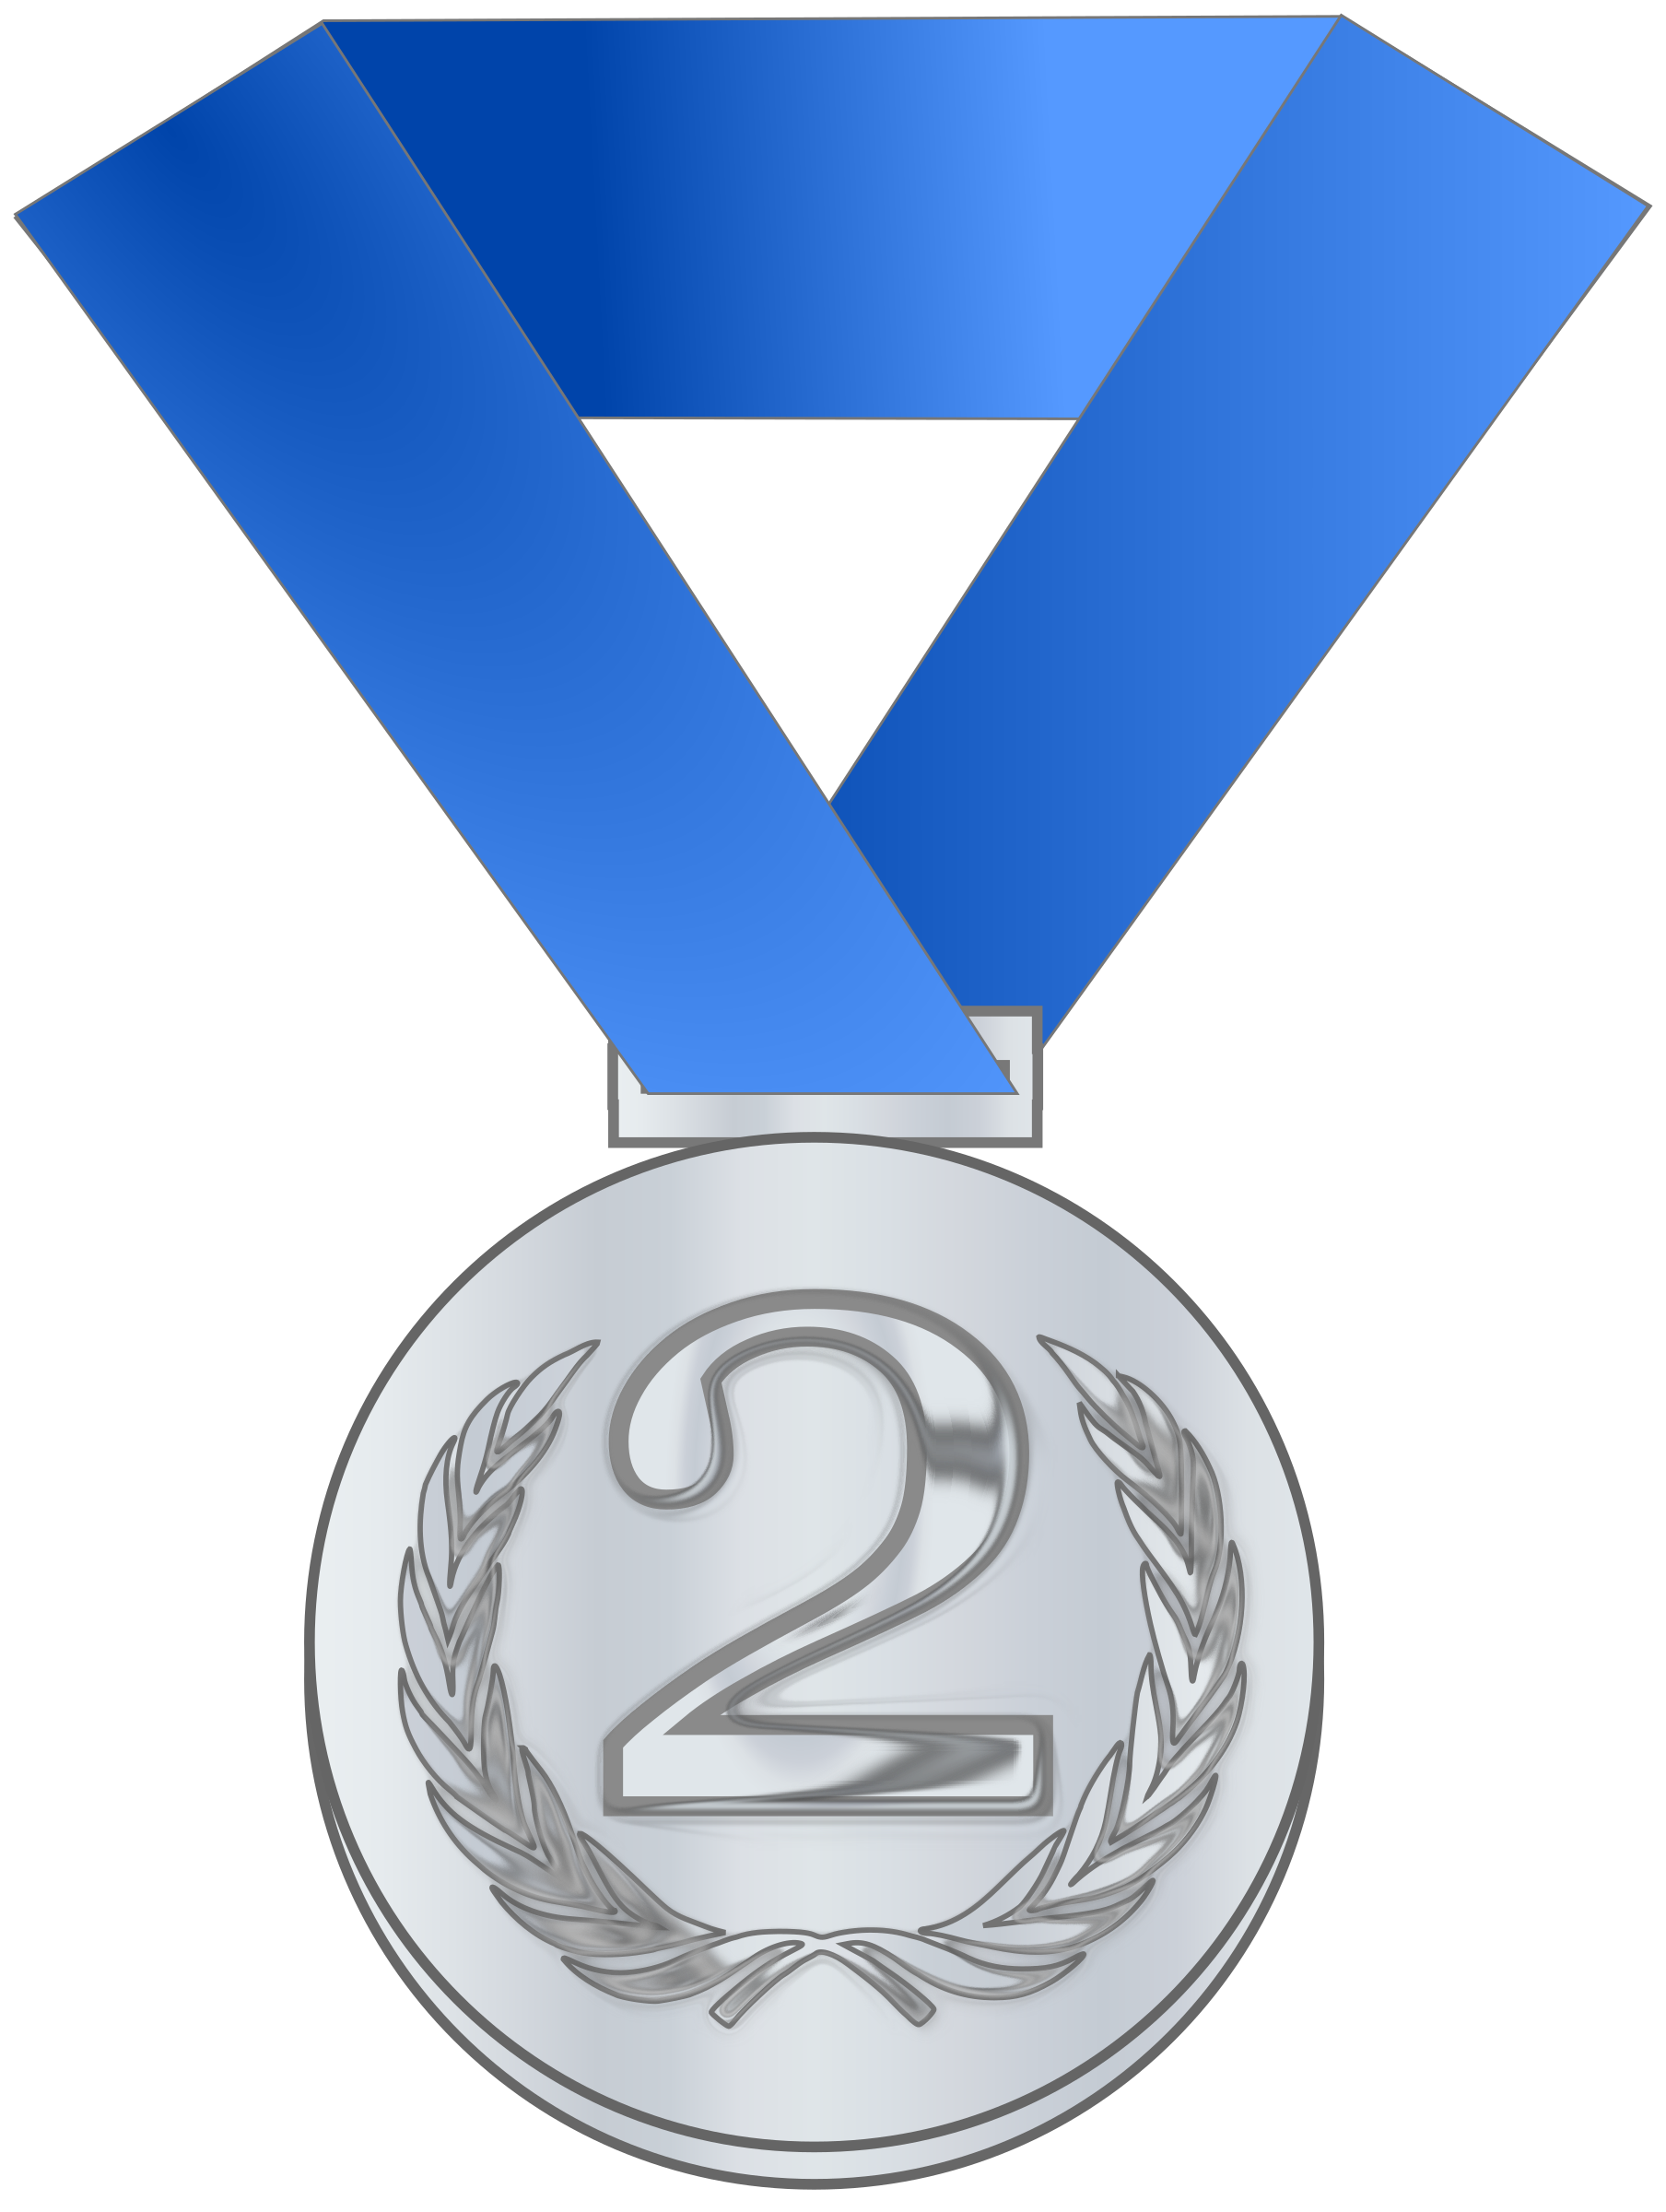 Silver medal / award by Juhele